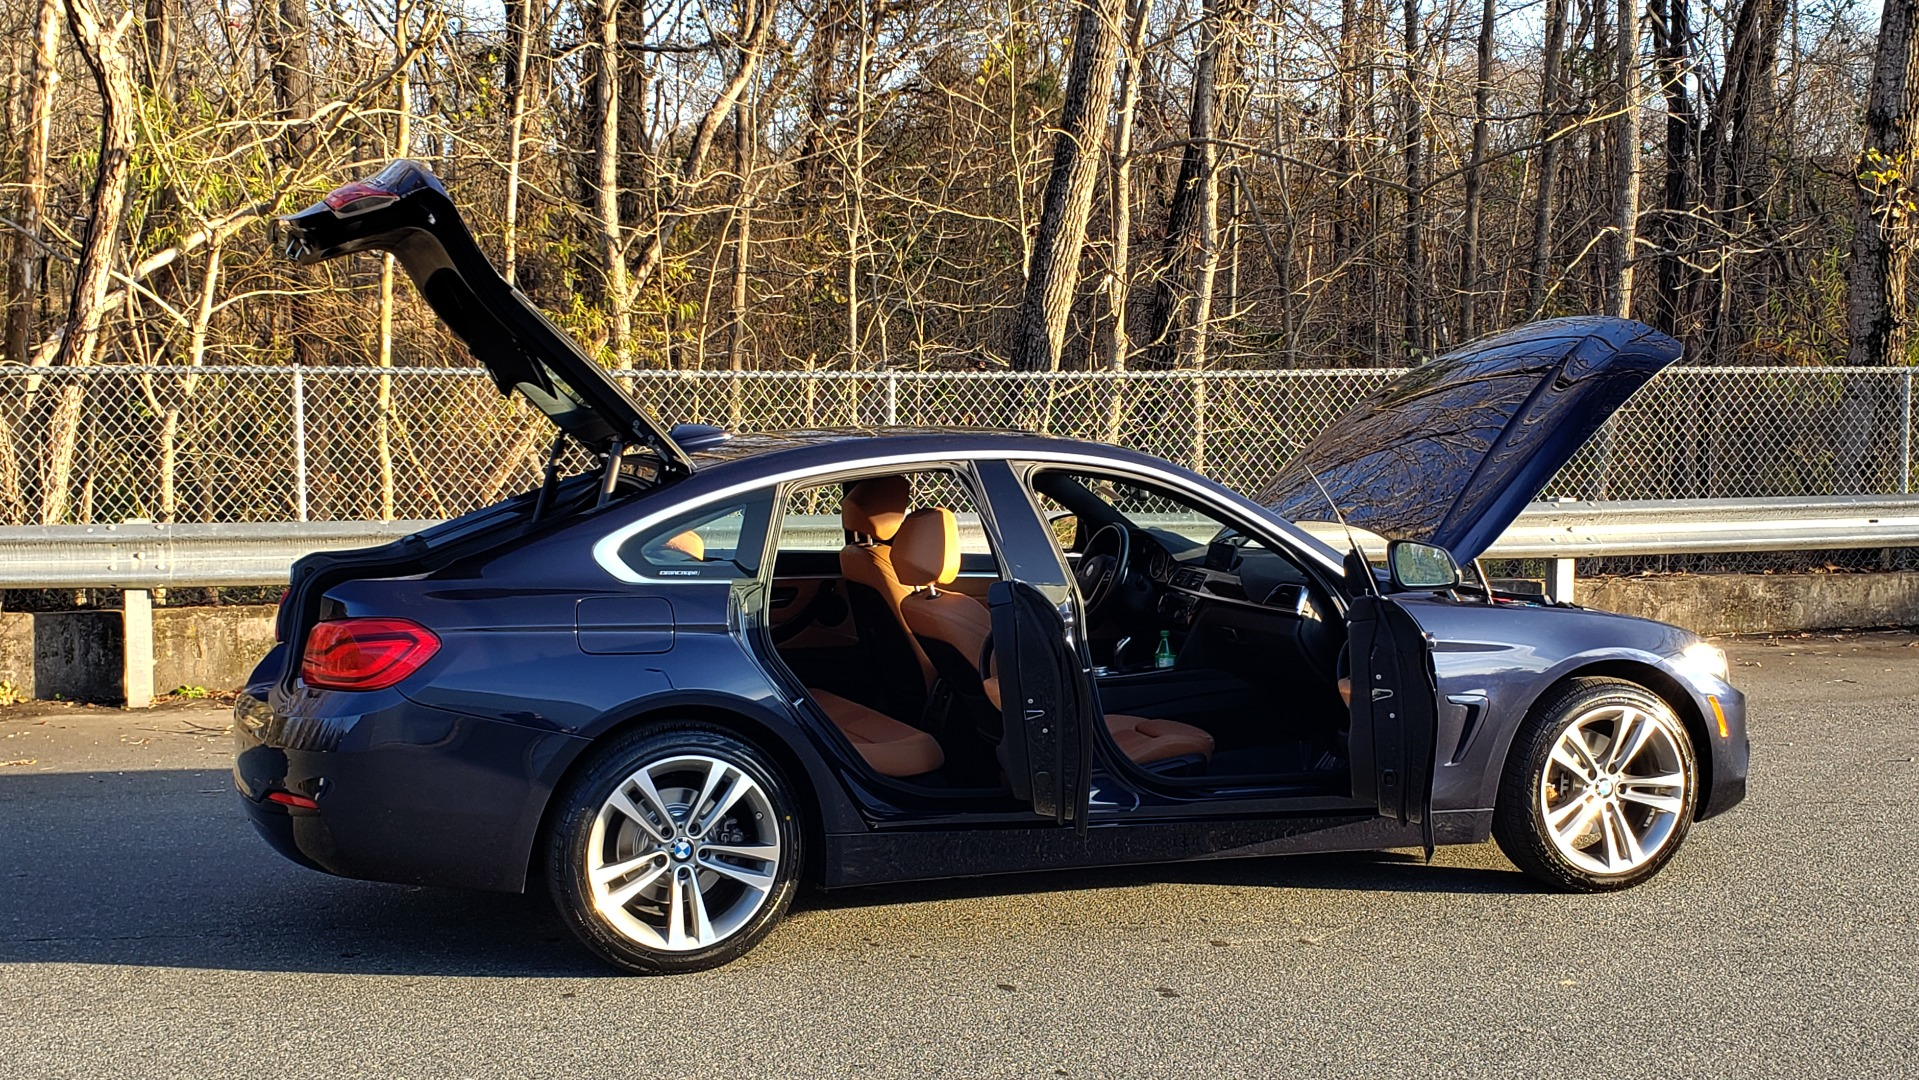 Used 2018 BMW 4 SERIES 430I XDRIVE PREMIUM / NAV / APPLE CAR PLAY / ESSENTIALS / HTD ST for sale Sold at Formula Imports in Charlotte NC 28227 11